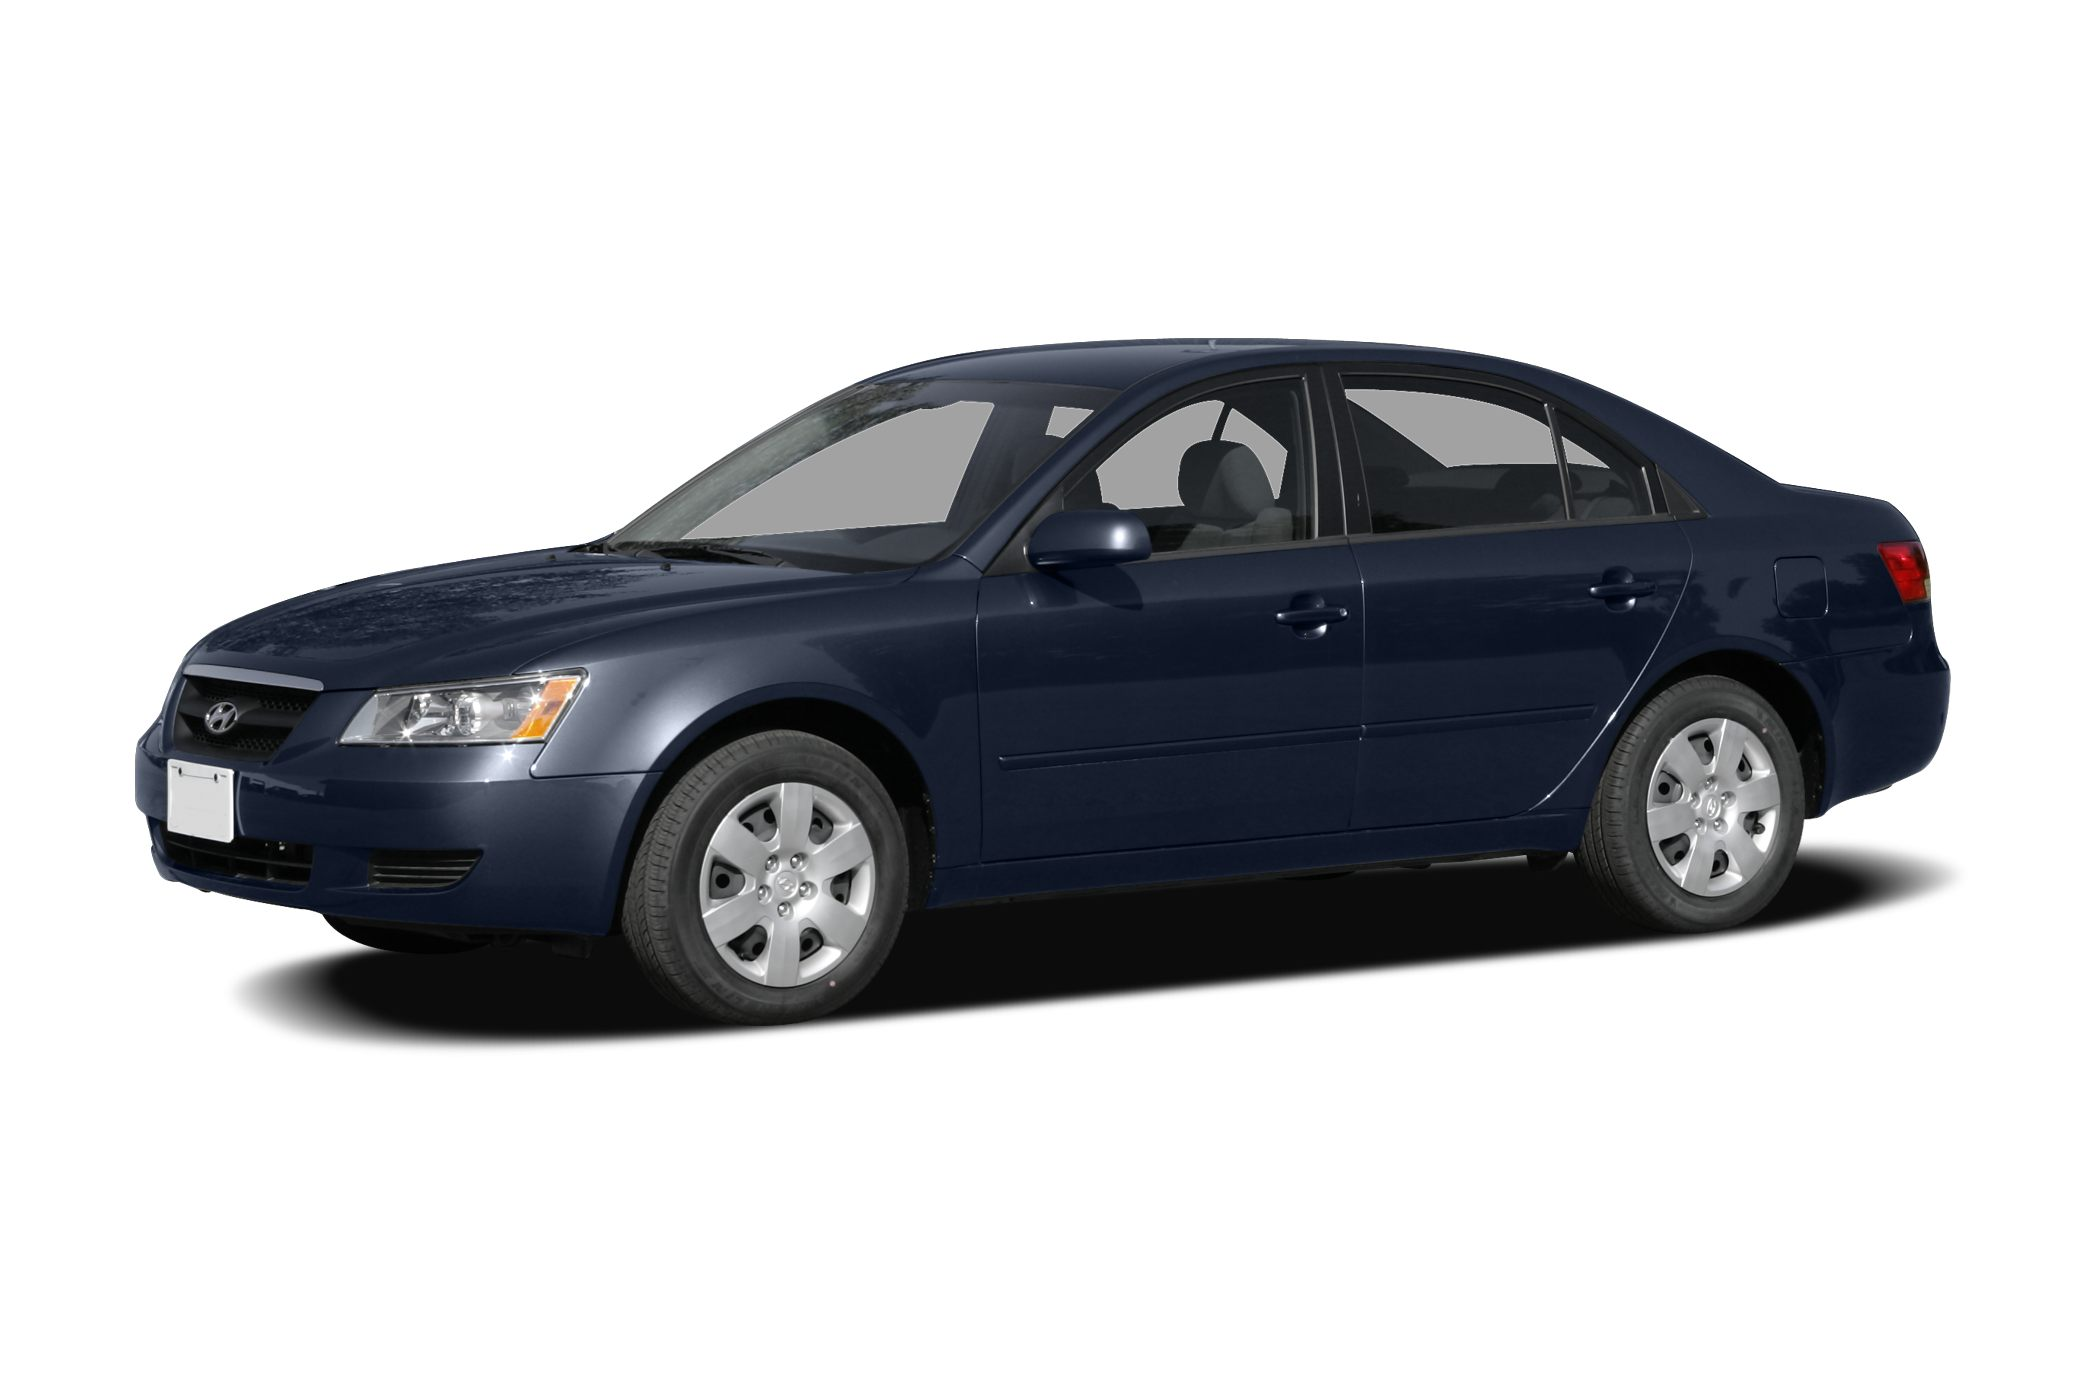 2008 Hyundai Sonata GLS Sedan for sale in Palm Springs for $7,955 with 89,886 miles